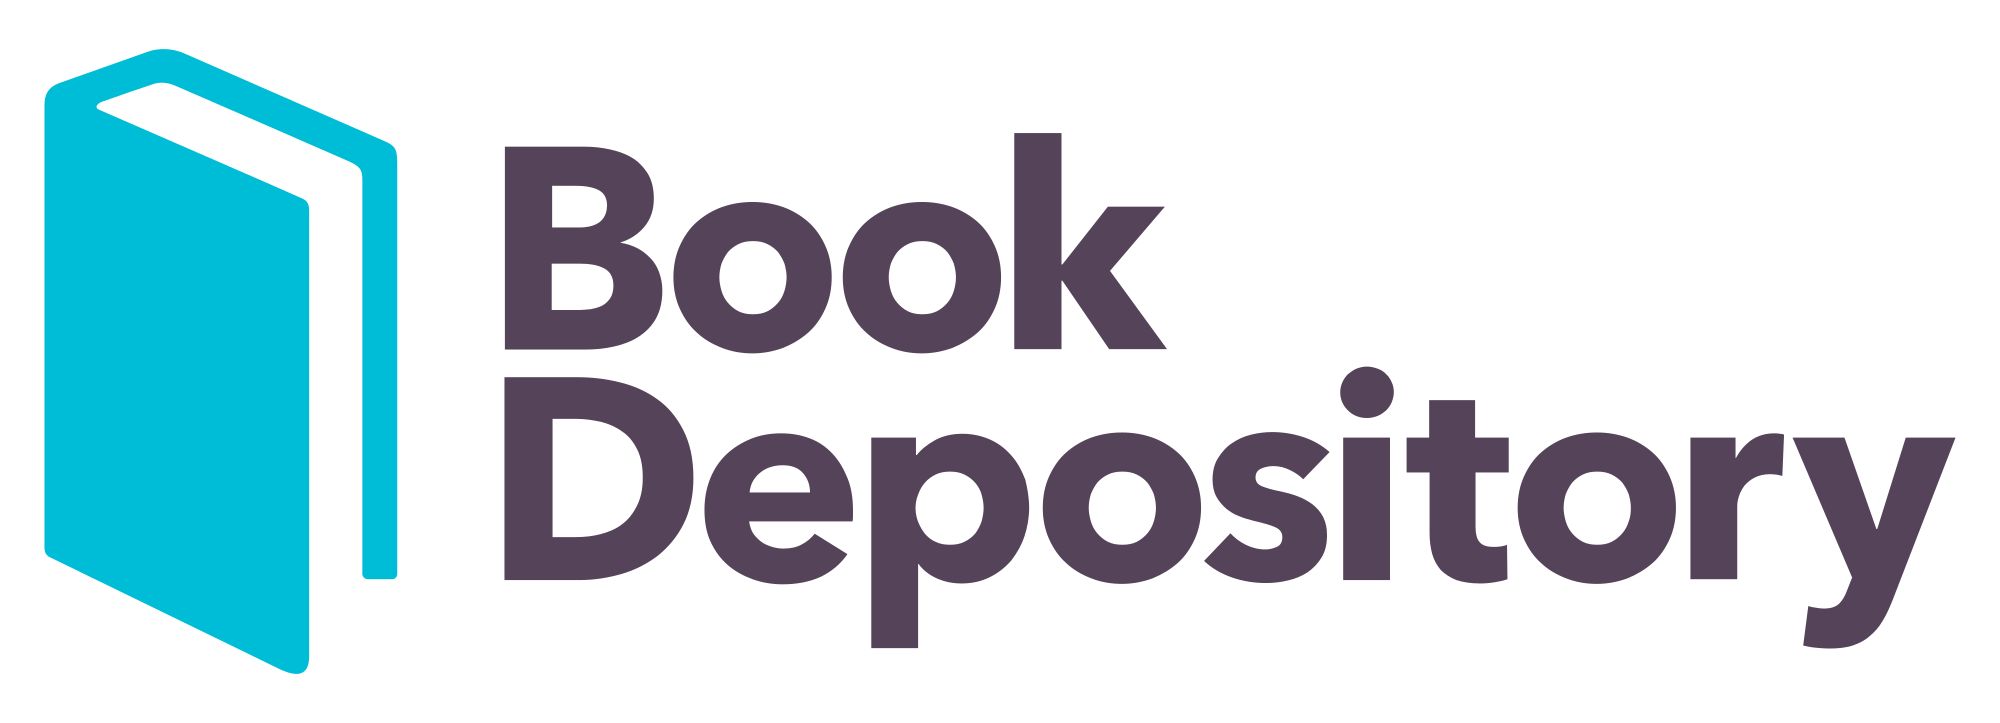 Buy Now: The Book Depository